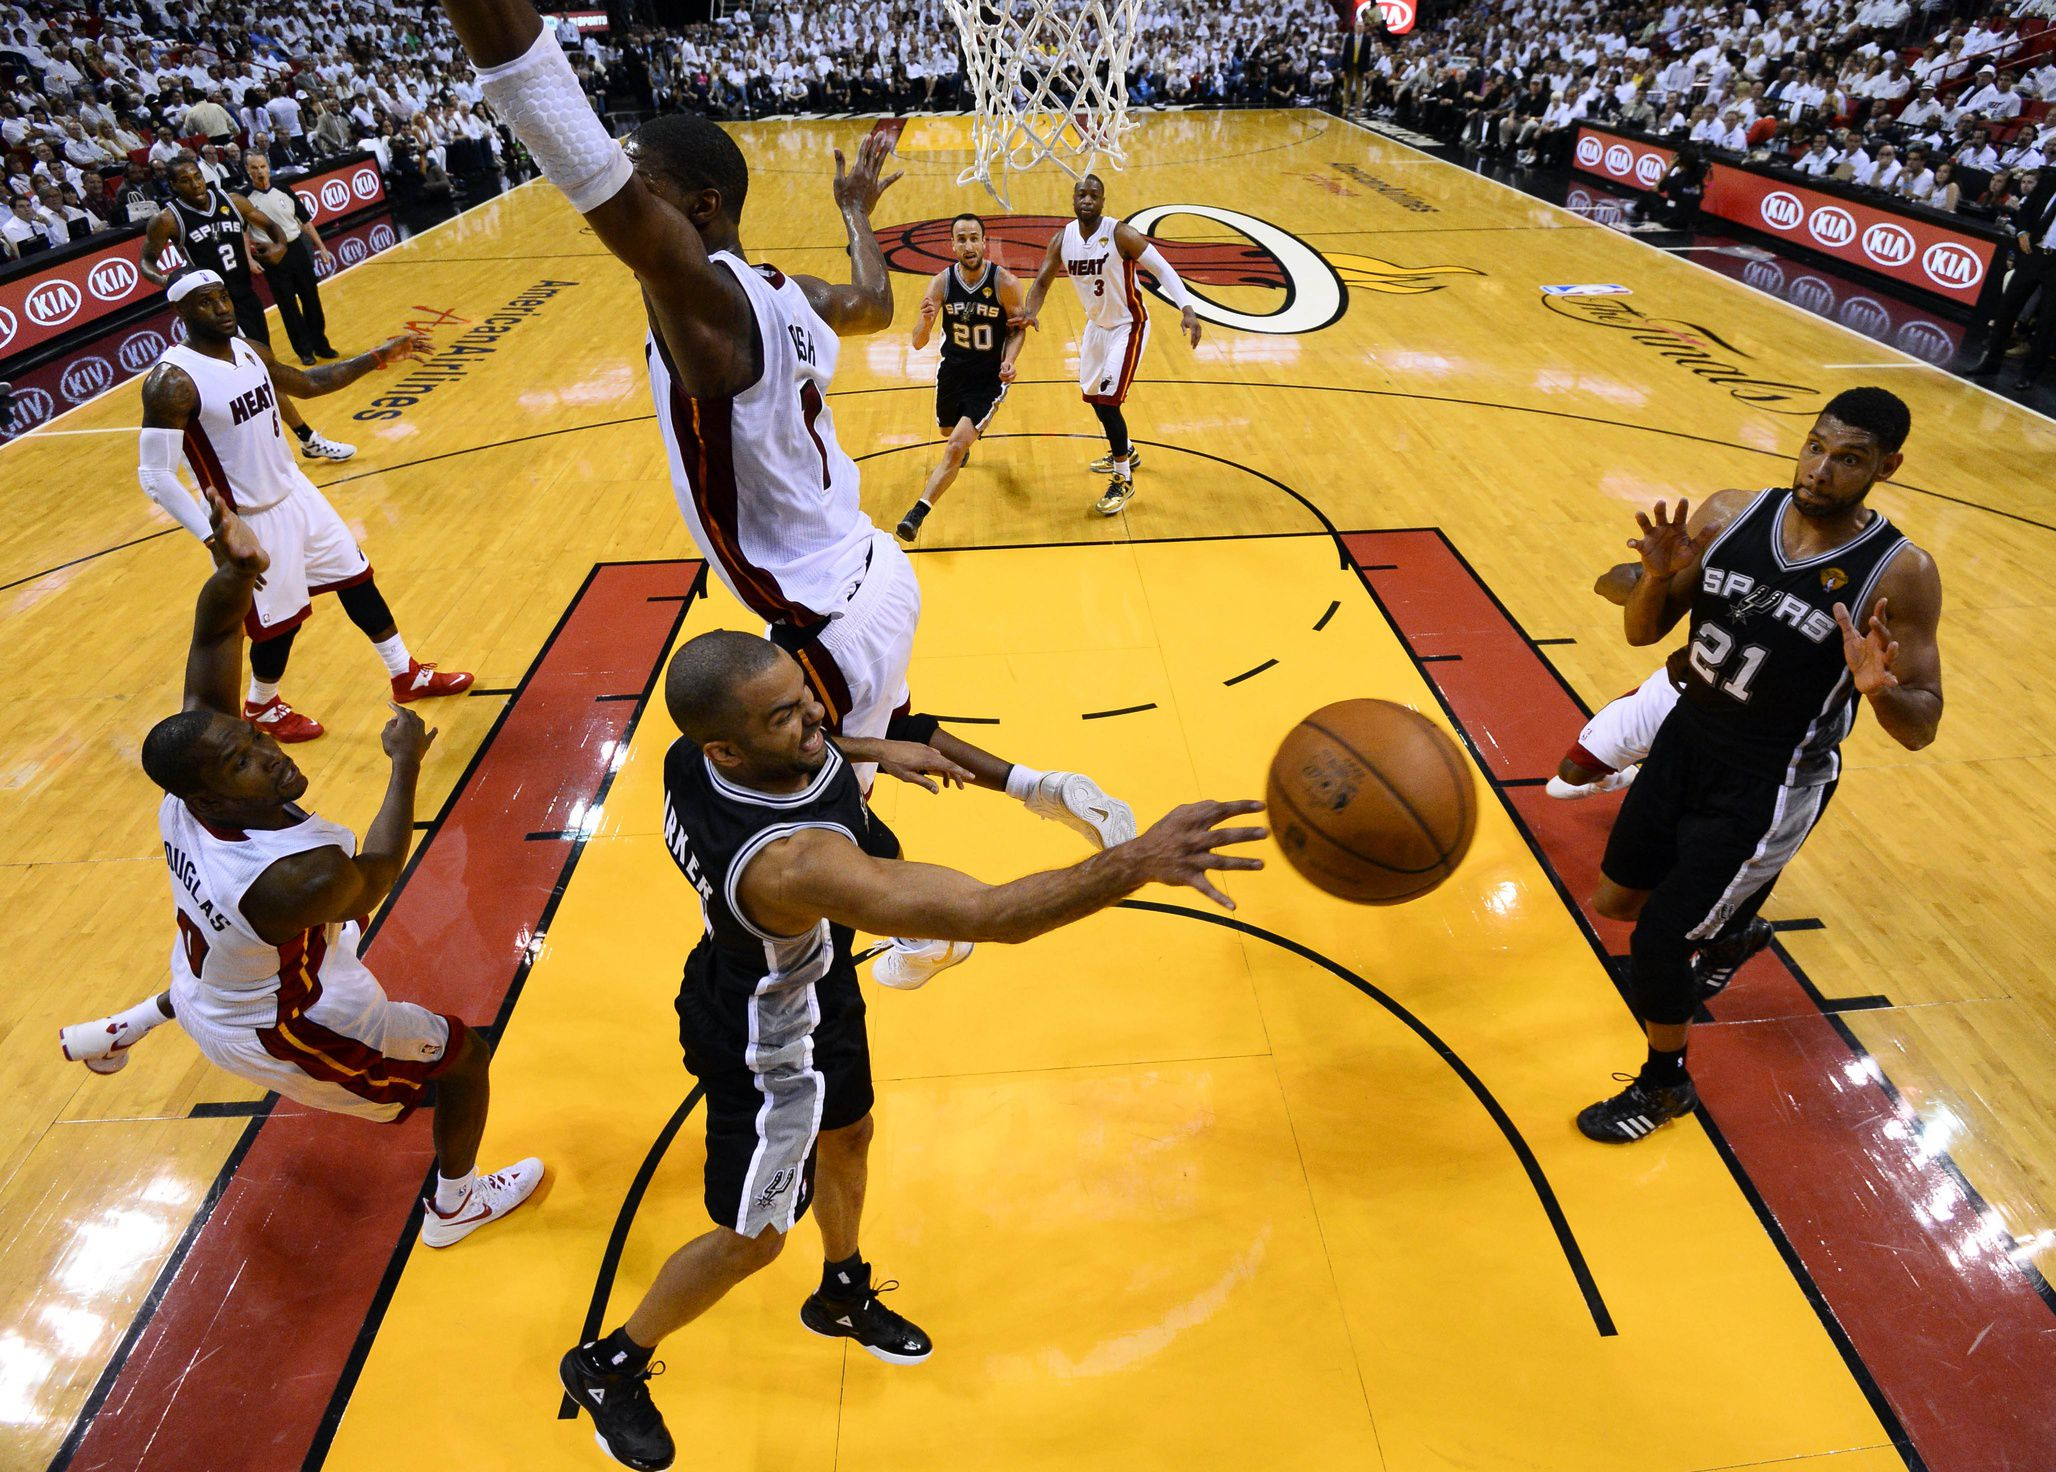 being a sucessful basketball player essay Free essays on my ambition to become basketball player get help with your writing 1 through 30.